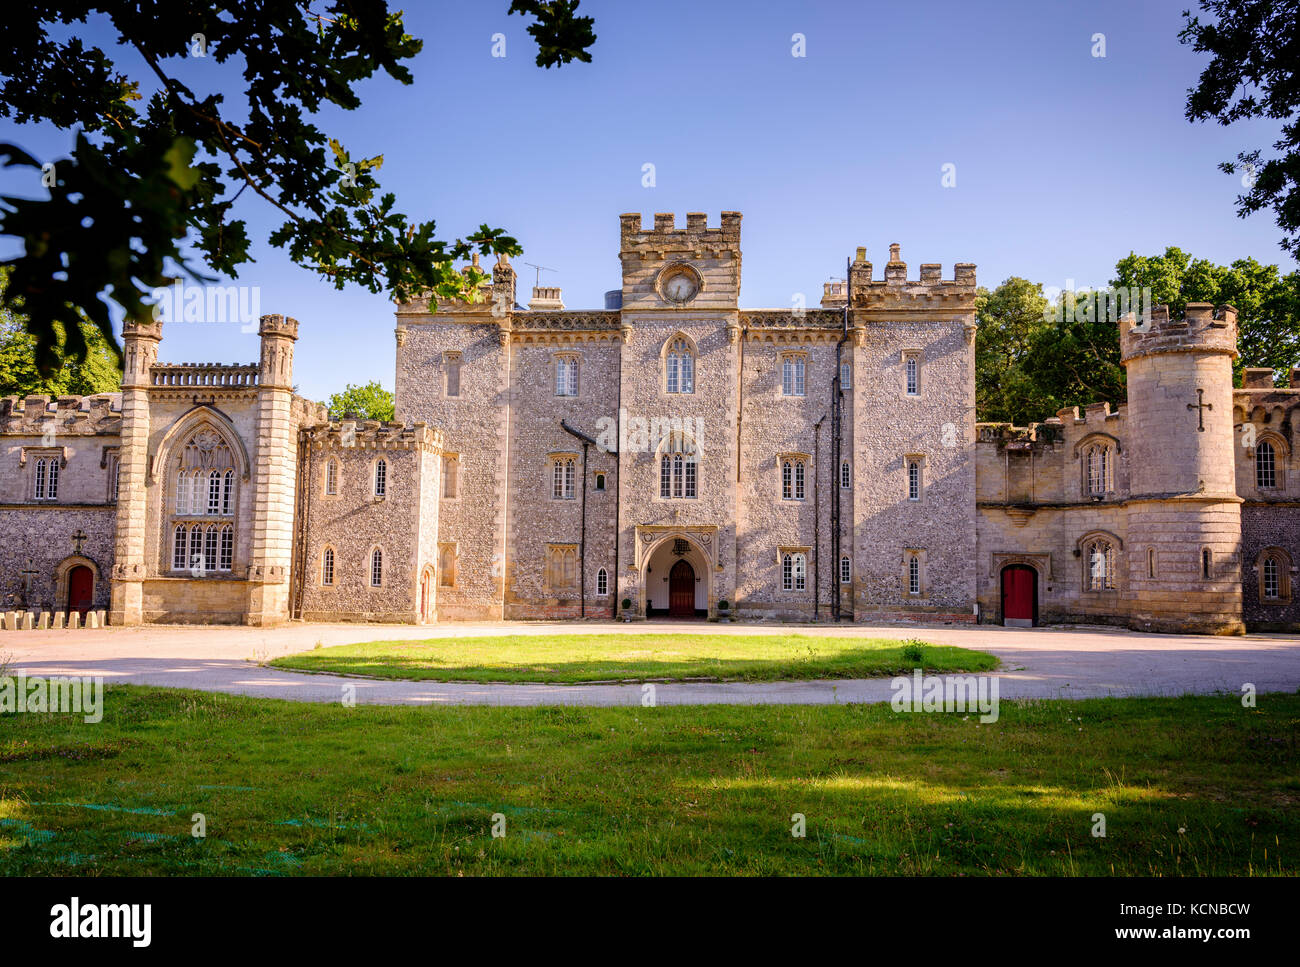 Lady Colin Campbell and her West Sussex home Castle Goring. - Stock Image